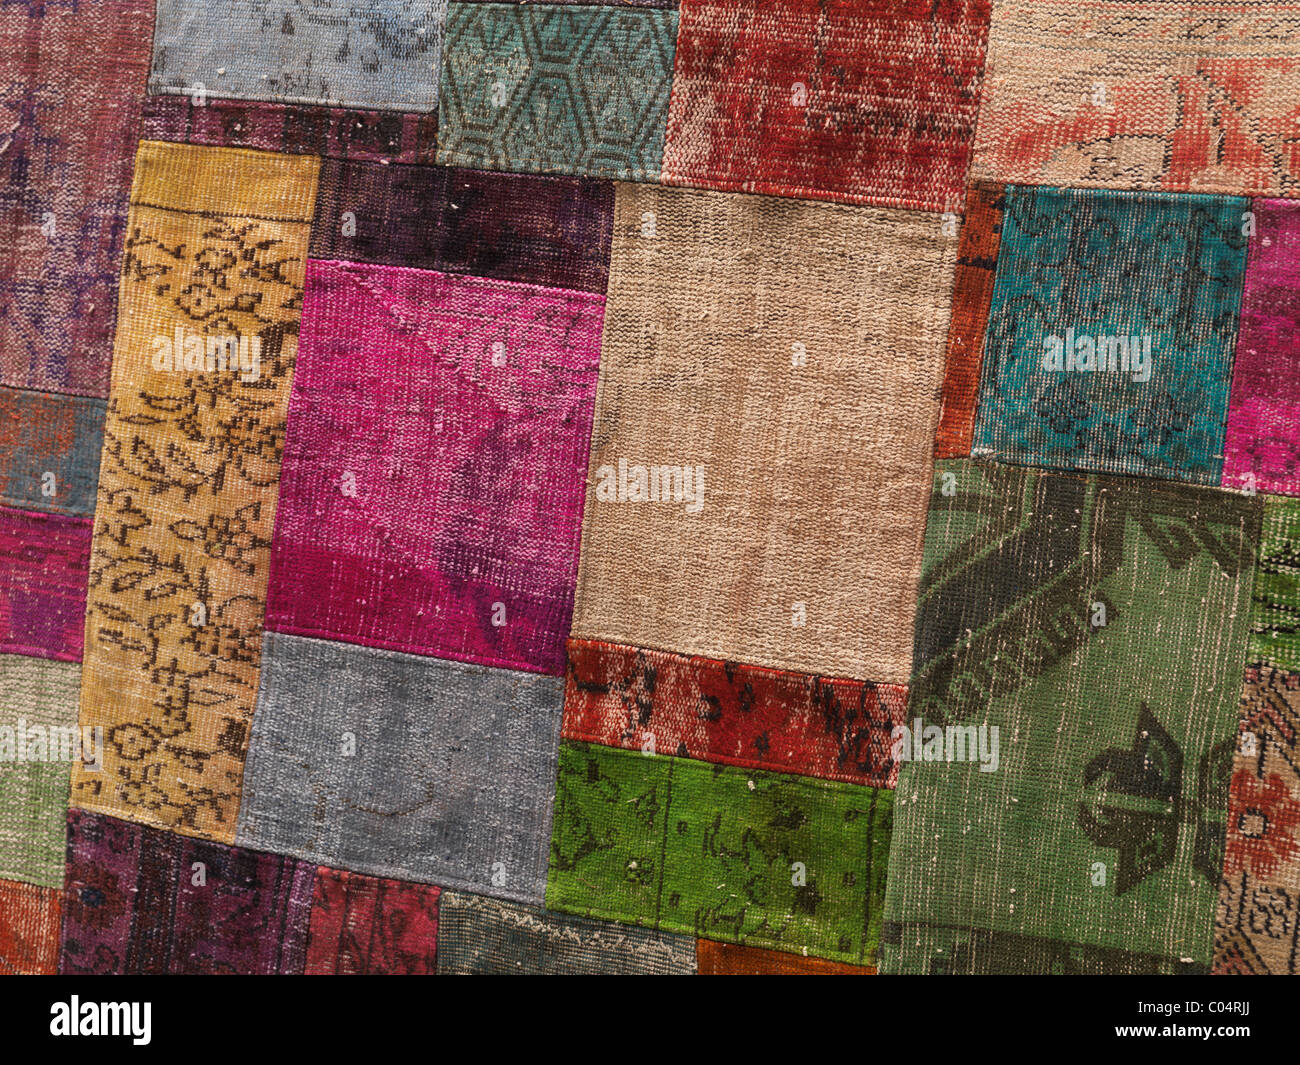 Carpet made of colorful patches of recycled vintage carpets - Stock Image